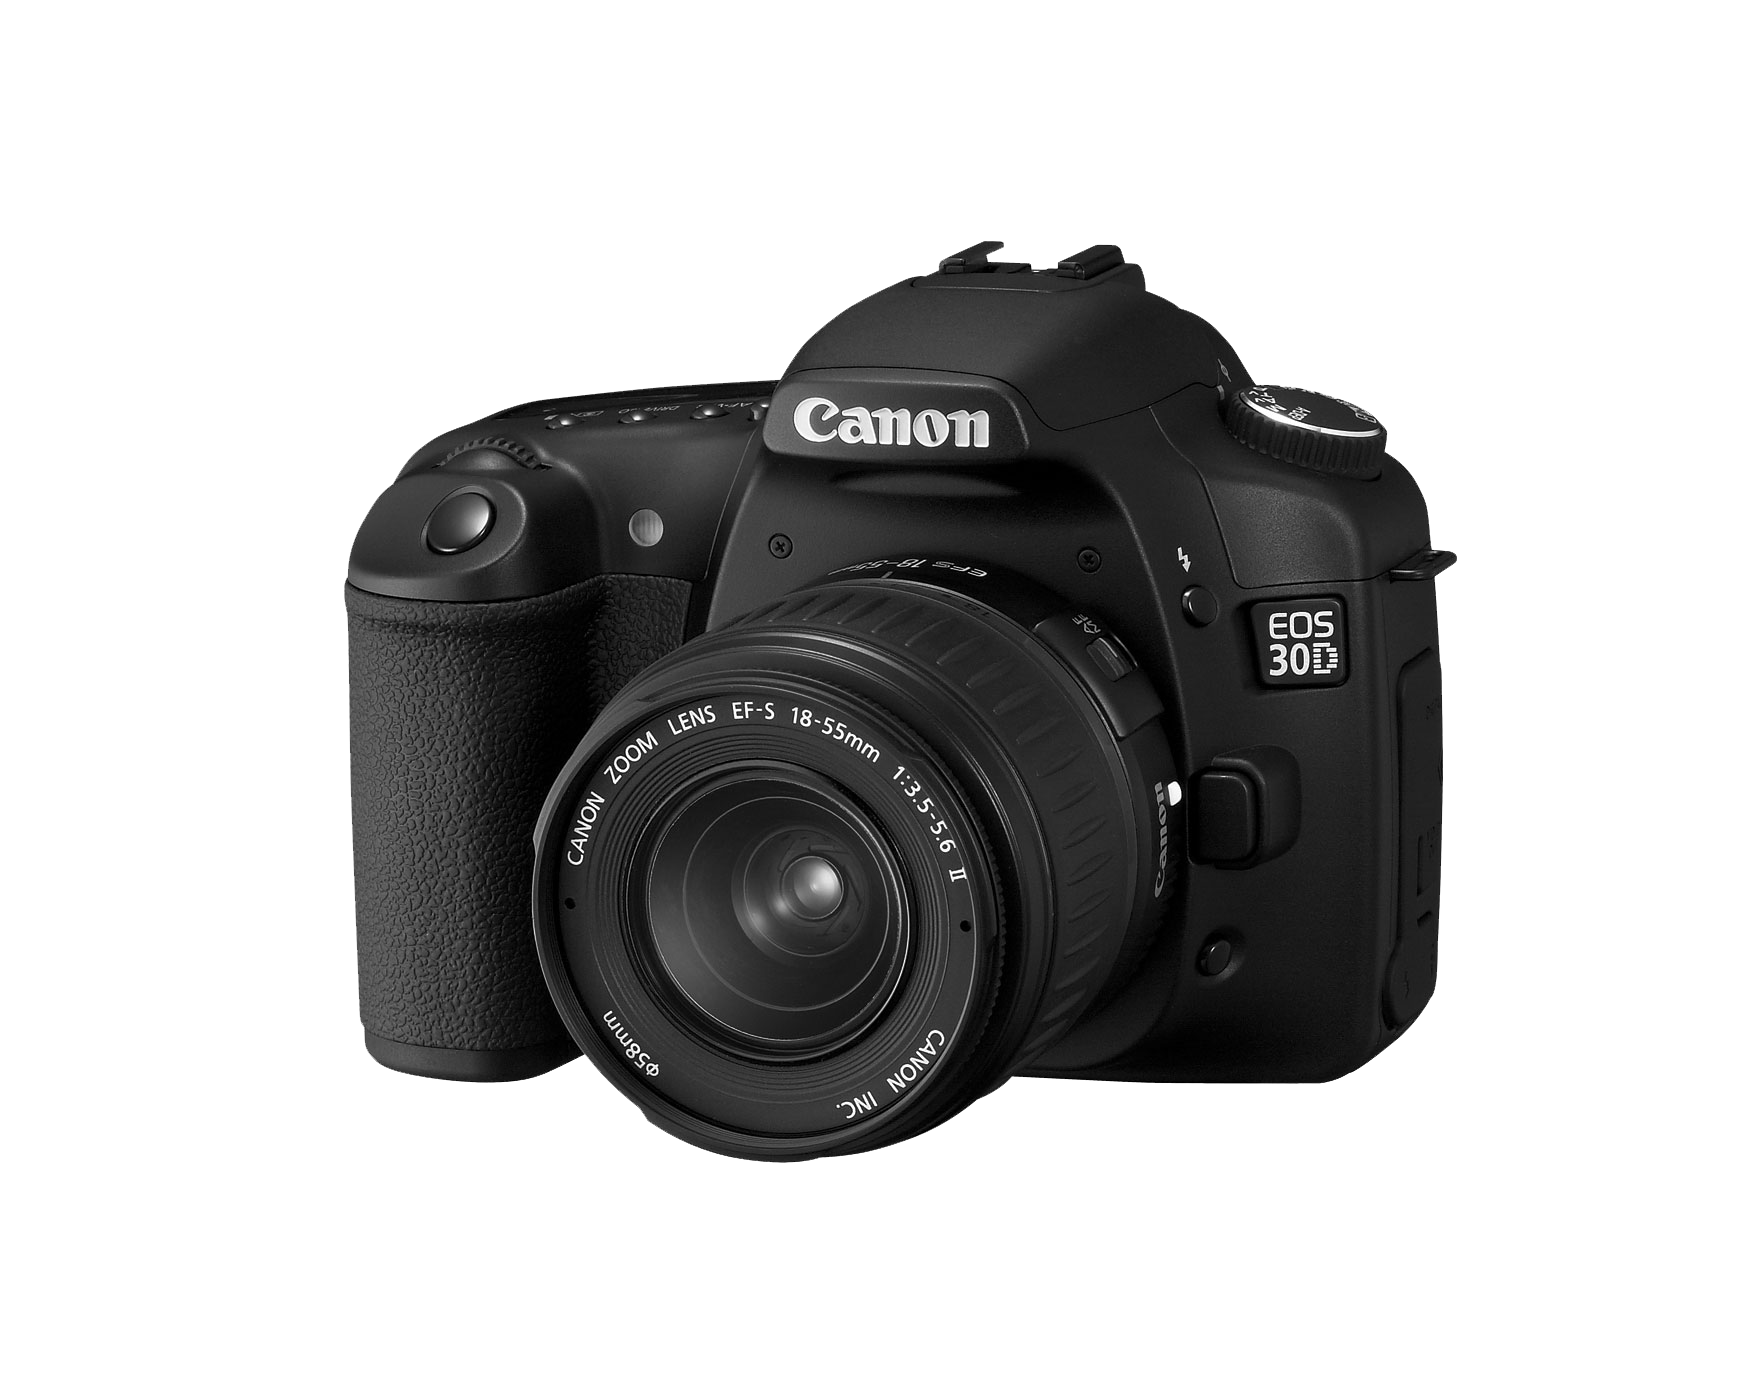 photo camera PNG image  photo camera PNG image